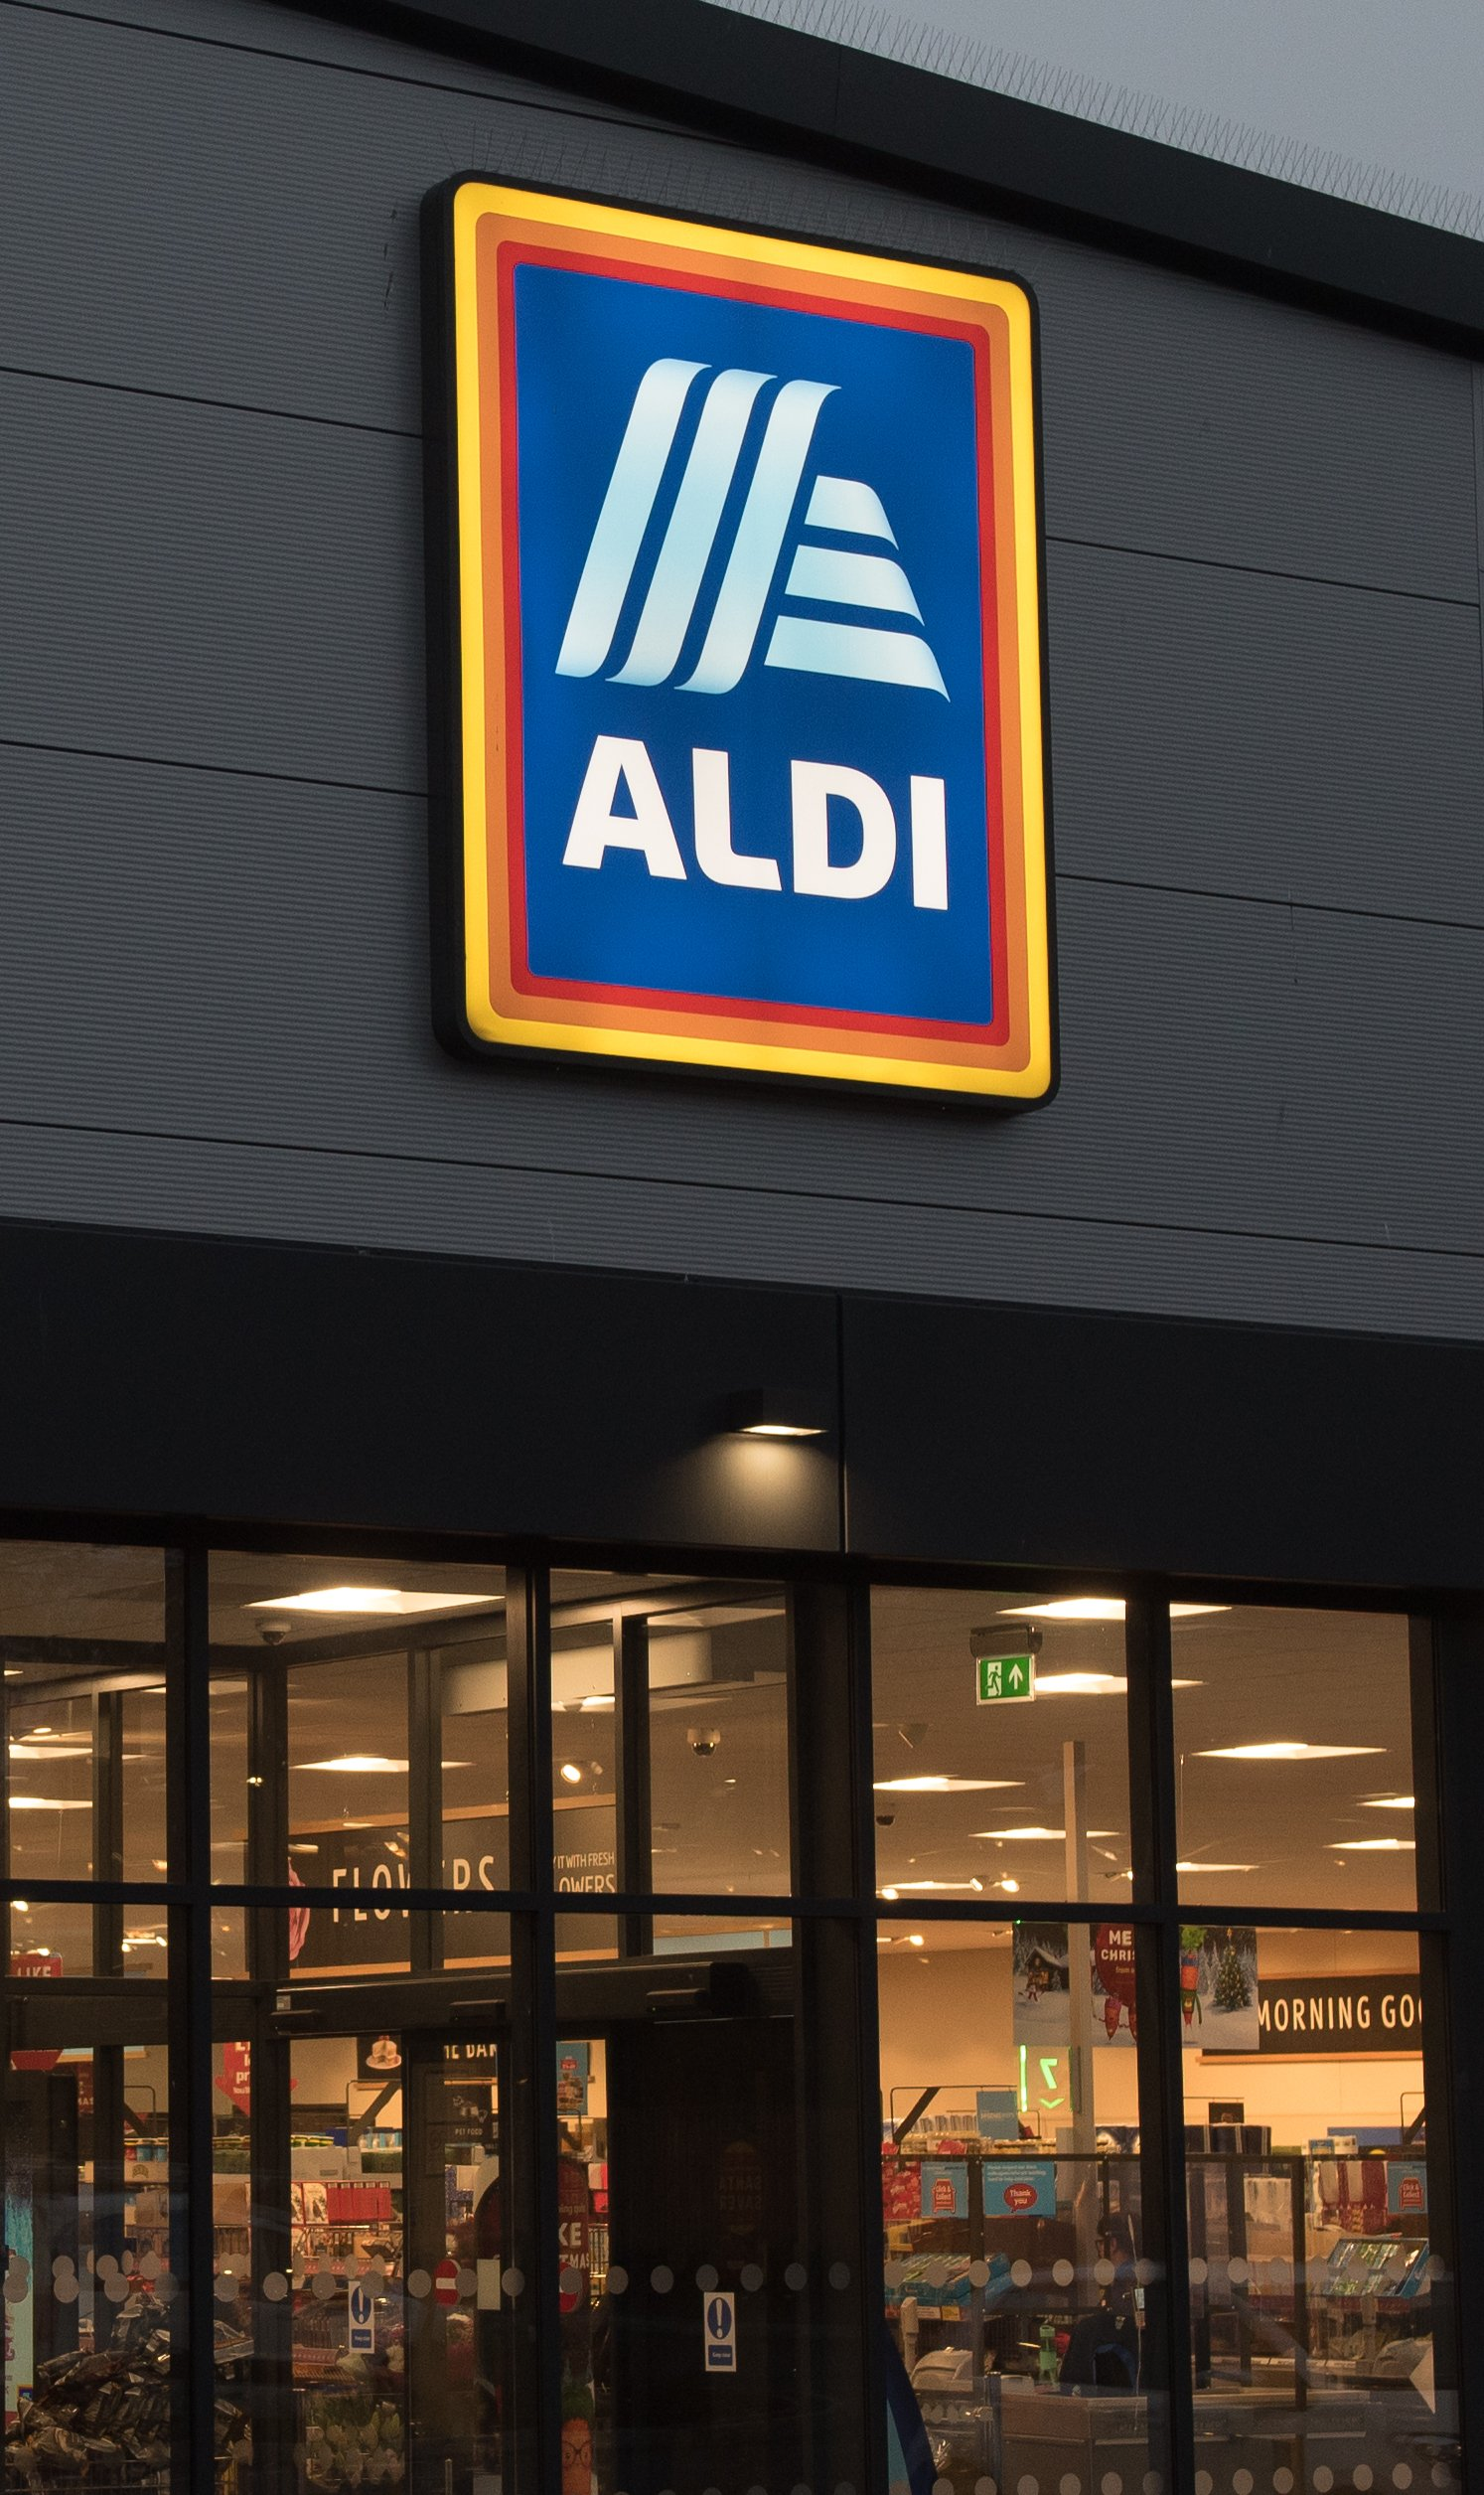 A view of one of the thousands of Aldi Supermarkets present in many countries around the world. | Photo: Getty Images.